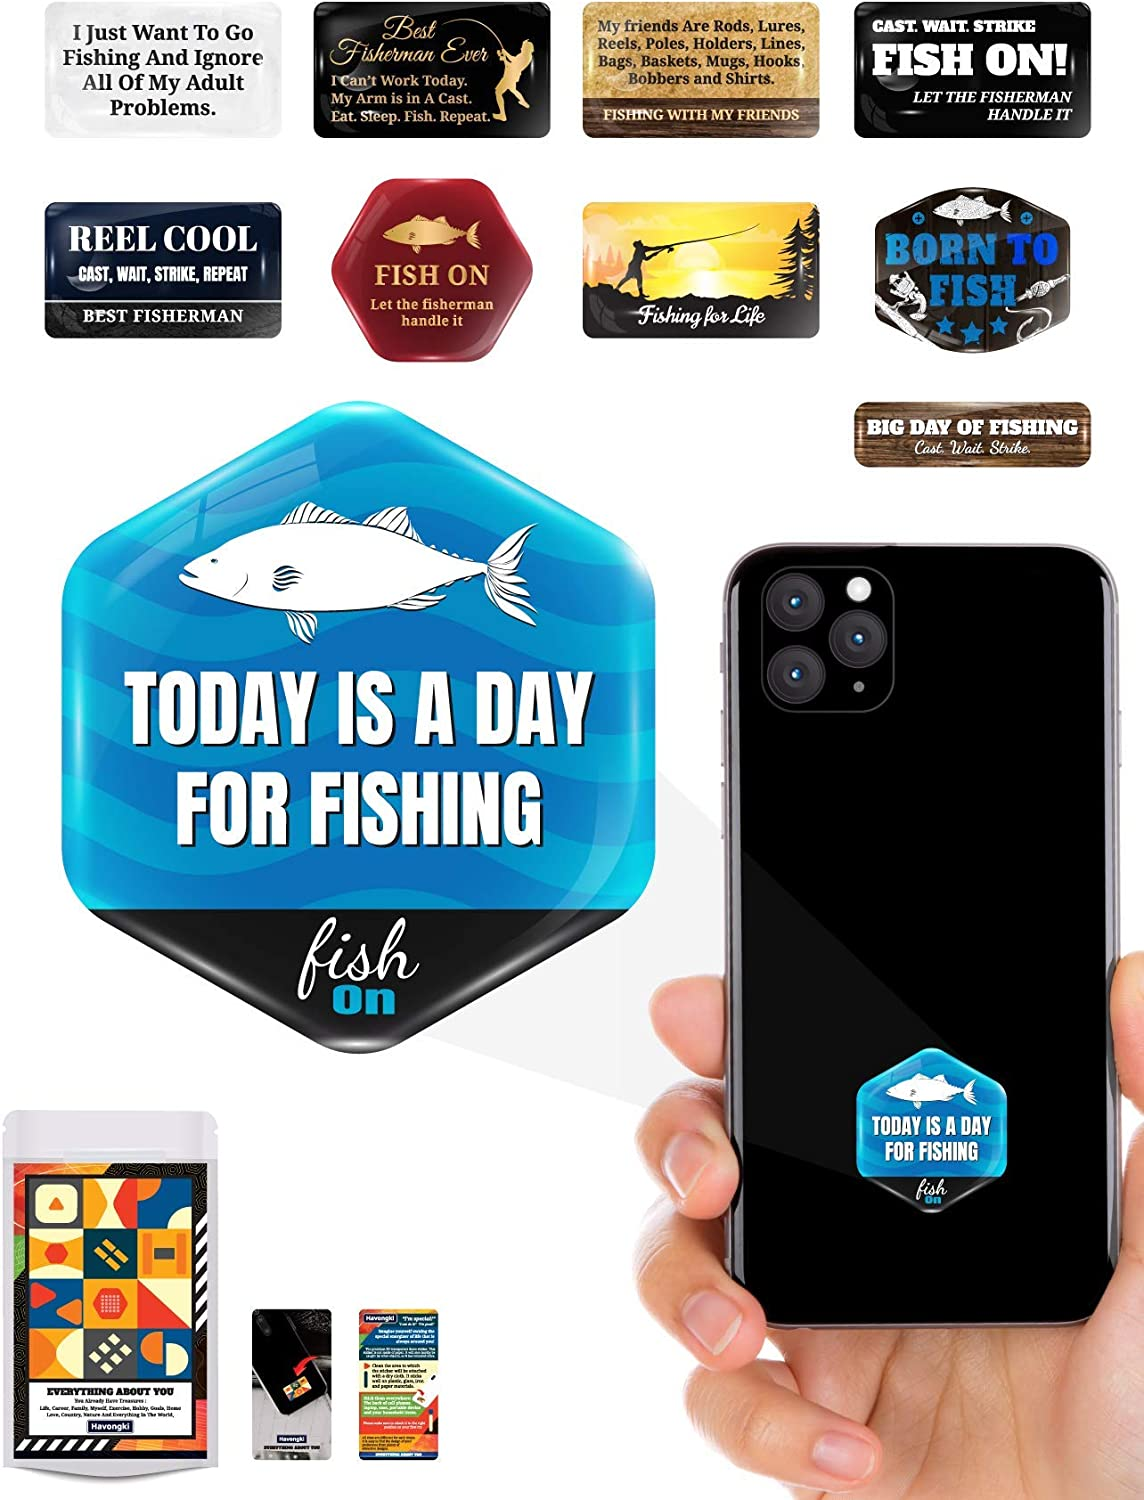 My Friends are Rod Lures Reel Pole Holder Bass Magnet Bag Basket Shirts Havongki Fishing Premium 3D Clear Dome Stick Accessories for Gifts Cell Phone Case for Men Dad Grandpa and Boyfriend 0398